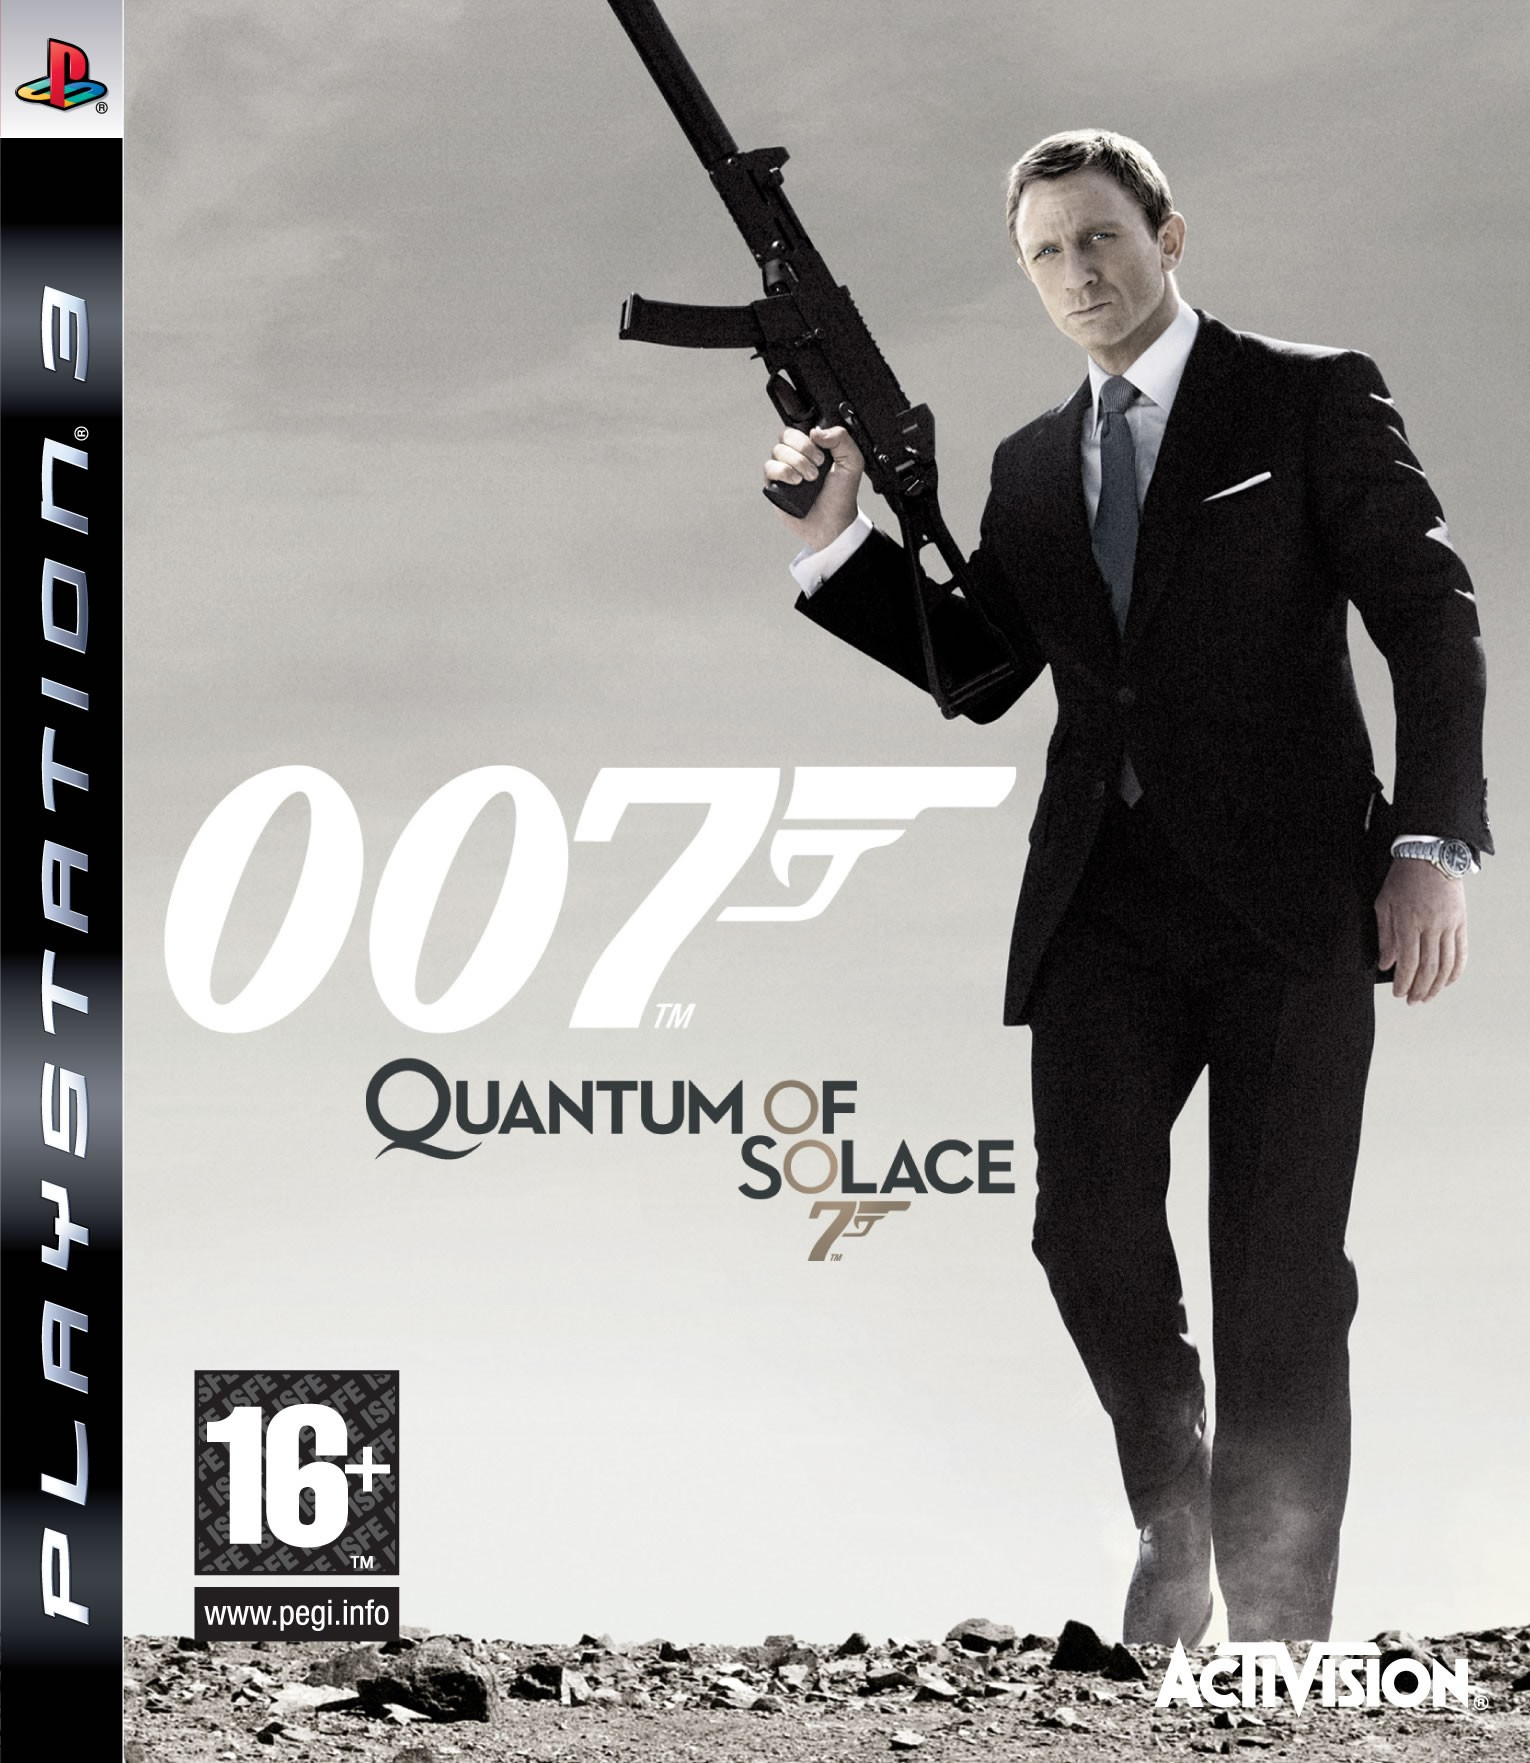 007 Quantum of Solace б/в PS3